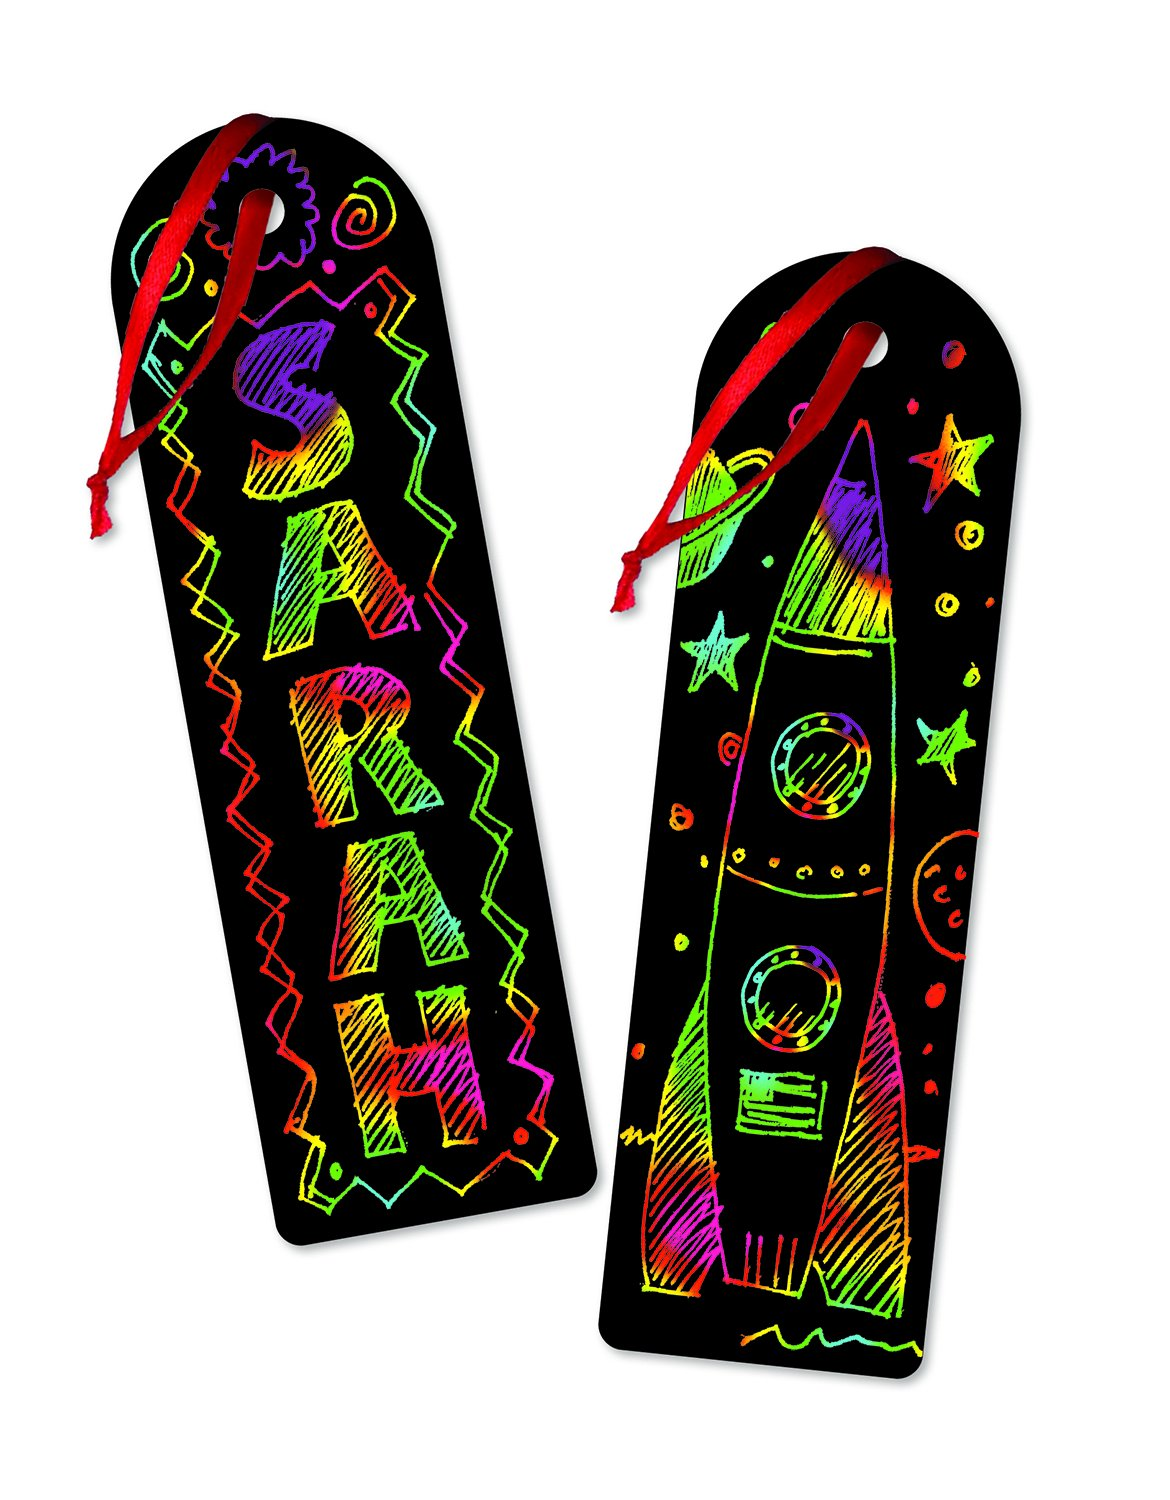 amazoncom melissa doug scratch art bookmark party pack activity kit 12 bookmarks melissa doug toys games